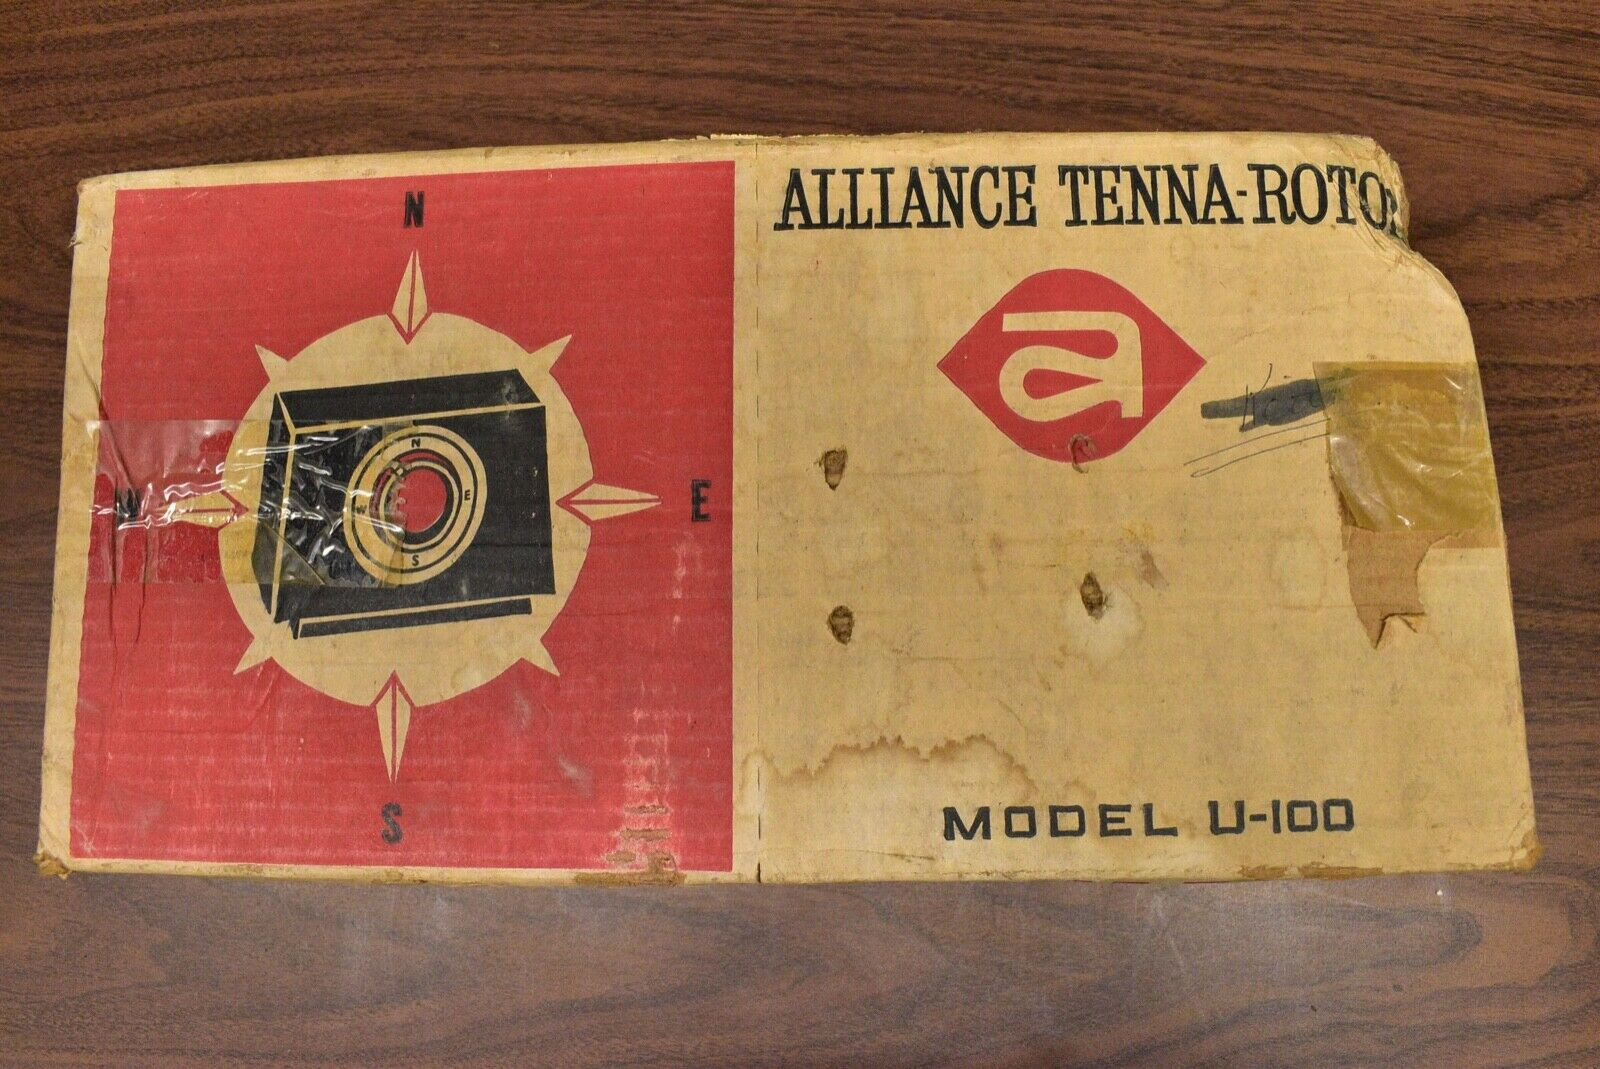 Alliance Tenna-Rotor U-100 Antenna Rotator with Controller - New Old Stock. Available Now for 259.00